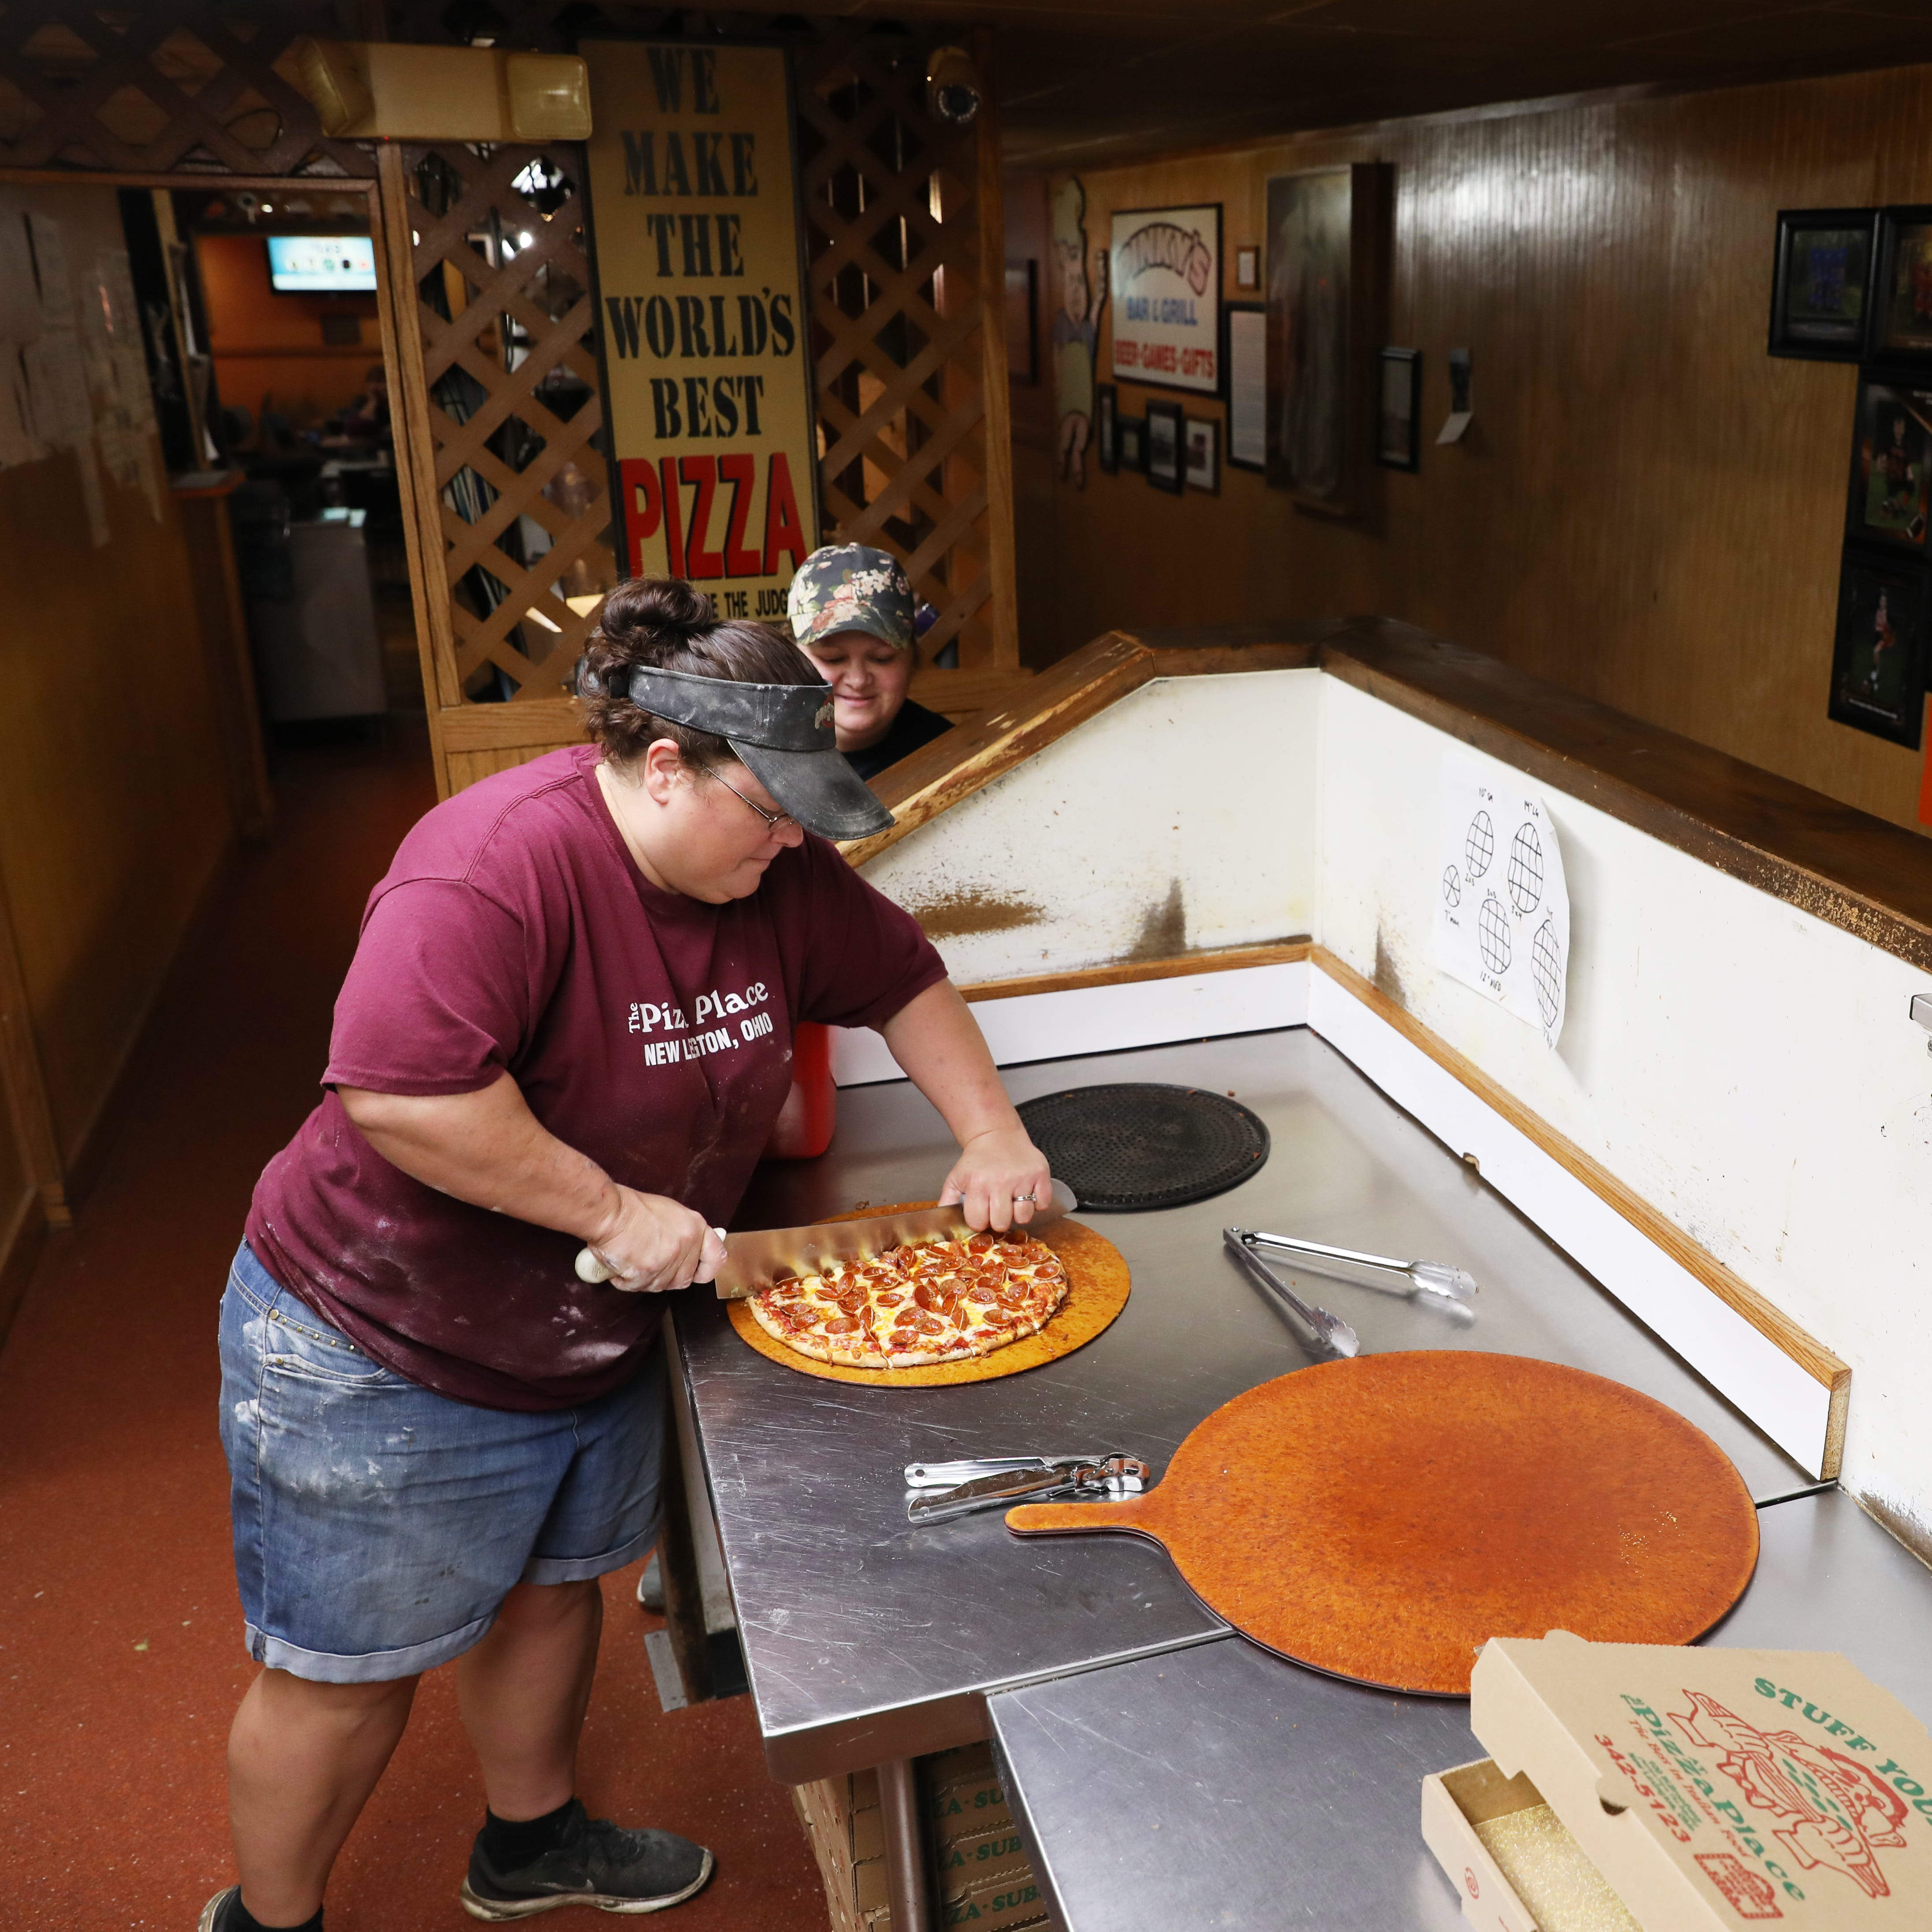 After 35 years, The Pizza Place still stuffing faces